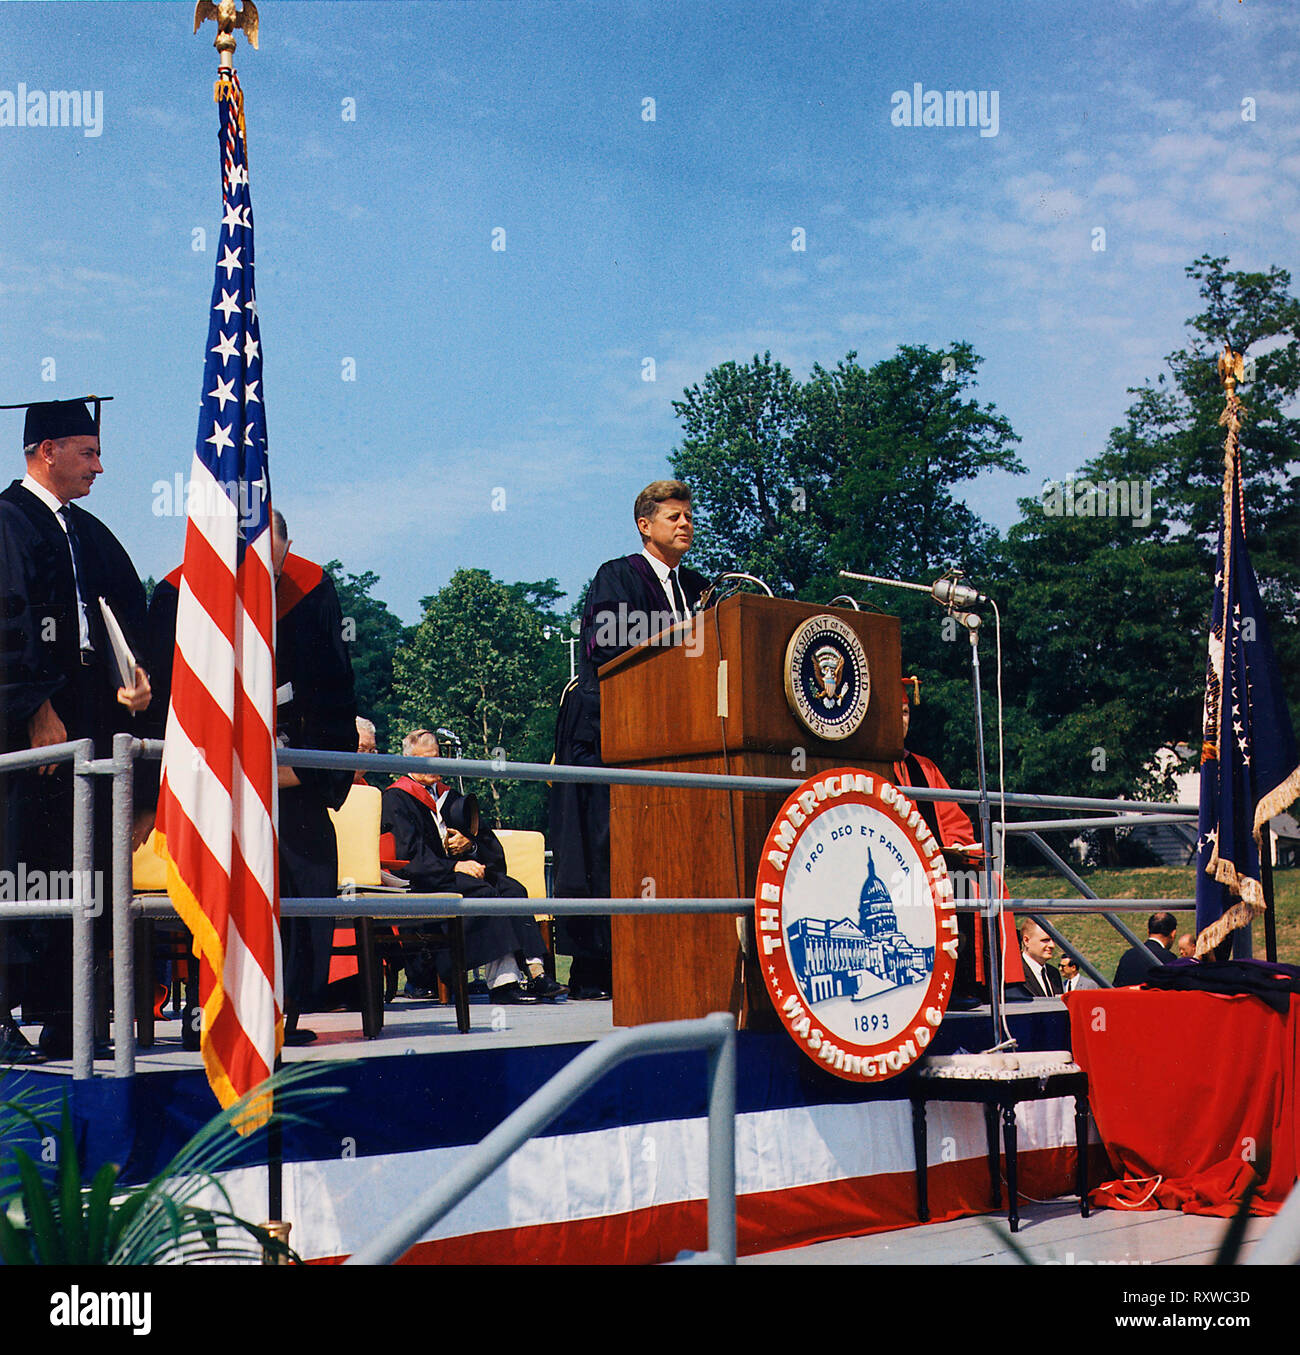 President John F Kennedy speaking at th Commencement Address at American University. Washington, D. C., American University, John M. Reeves Athletic Field. June 1963 - Stock Image